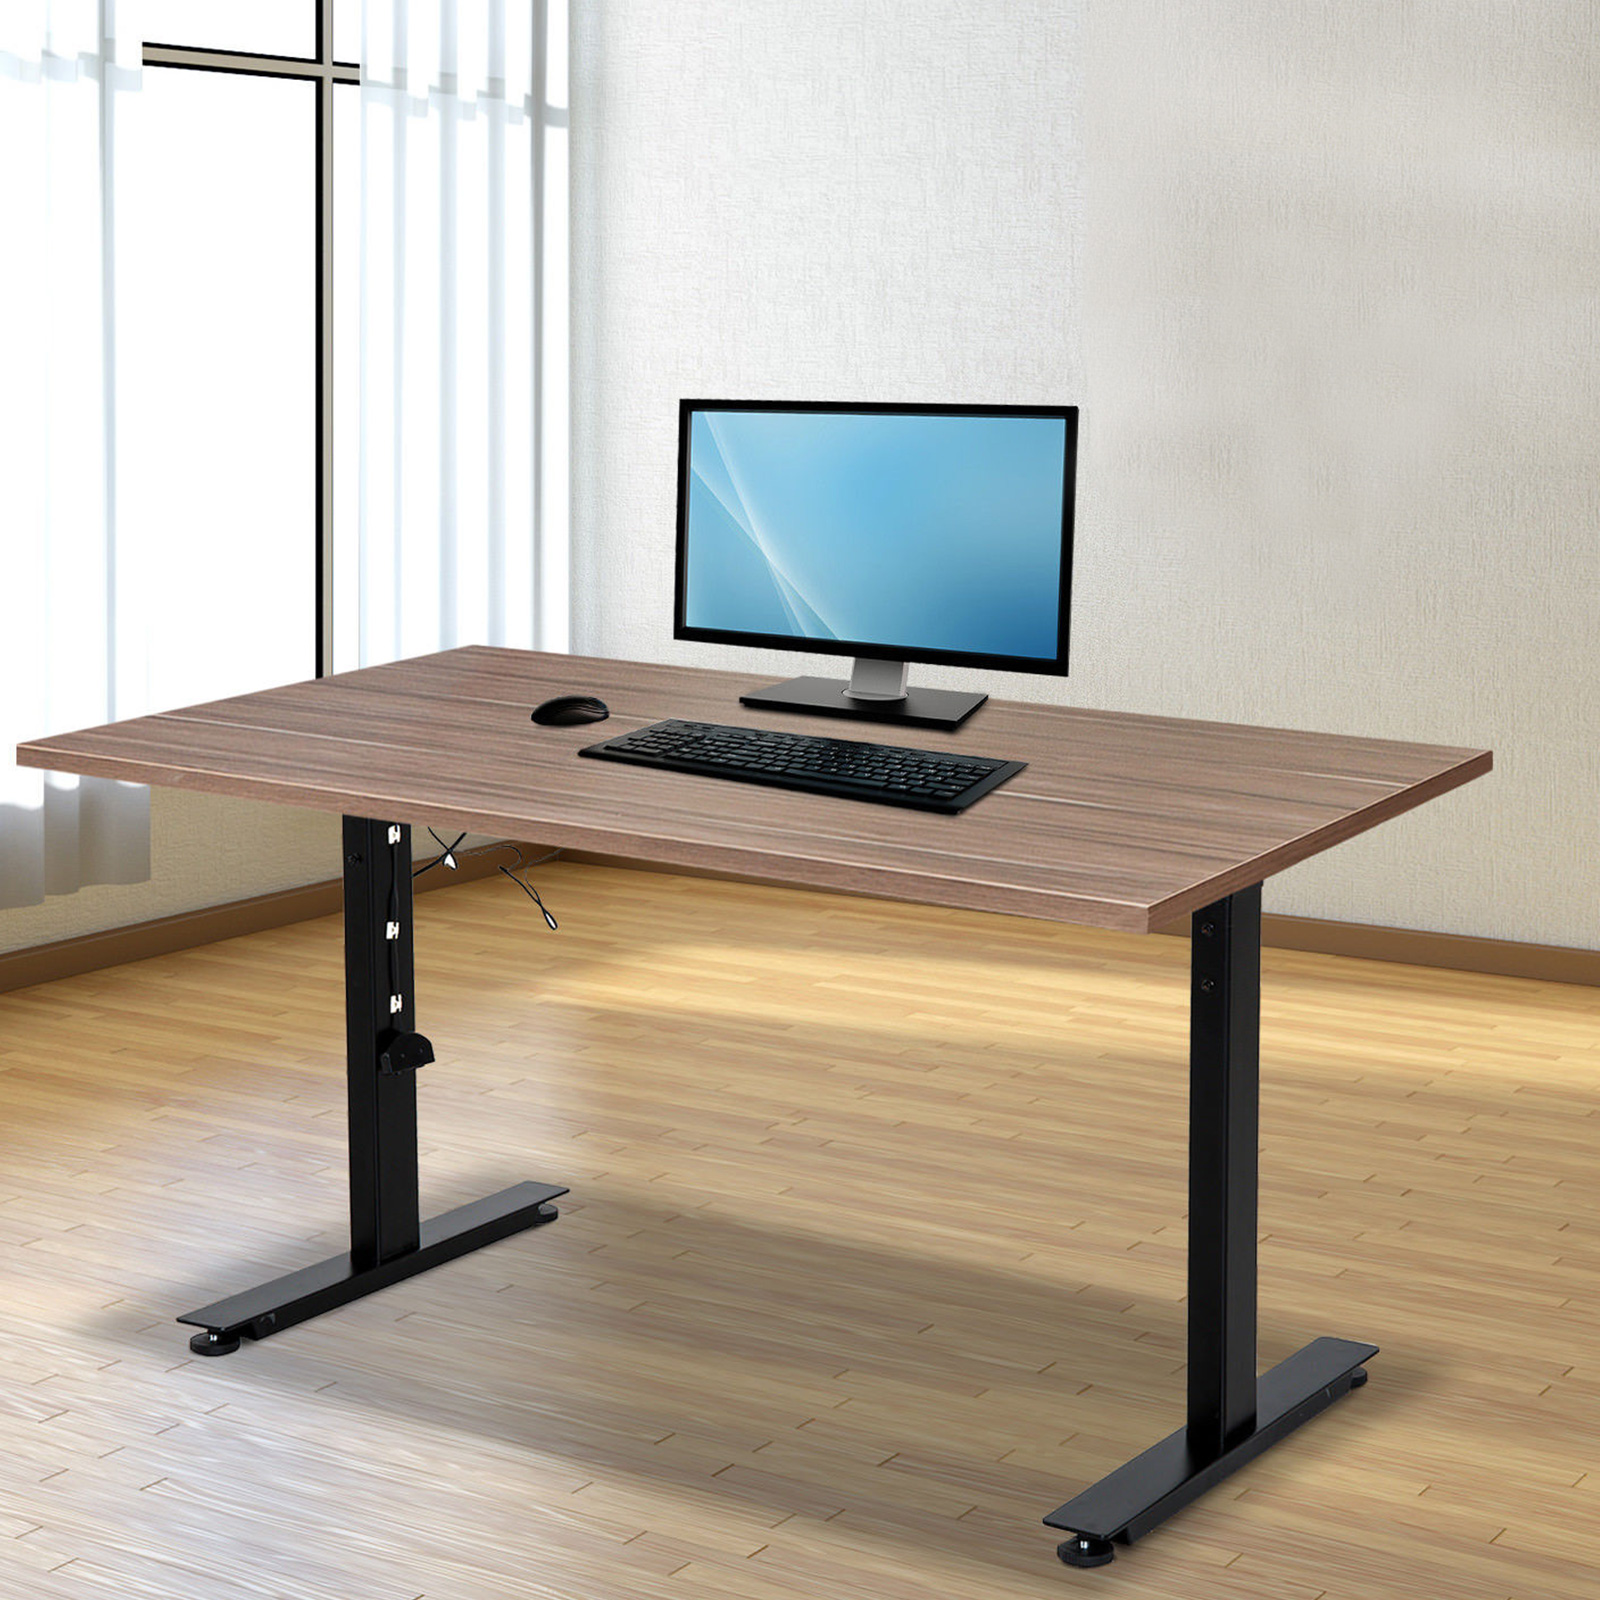 Electric-Sit-Stand-Standing-Desk-Frame-Dual-Motor-Stable-Heavy-Duty-Premium thumbnail 36